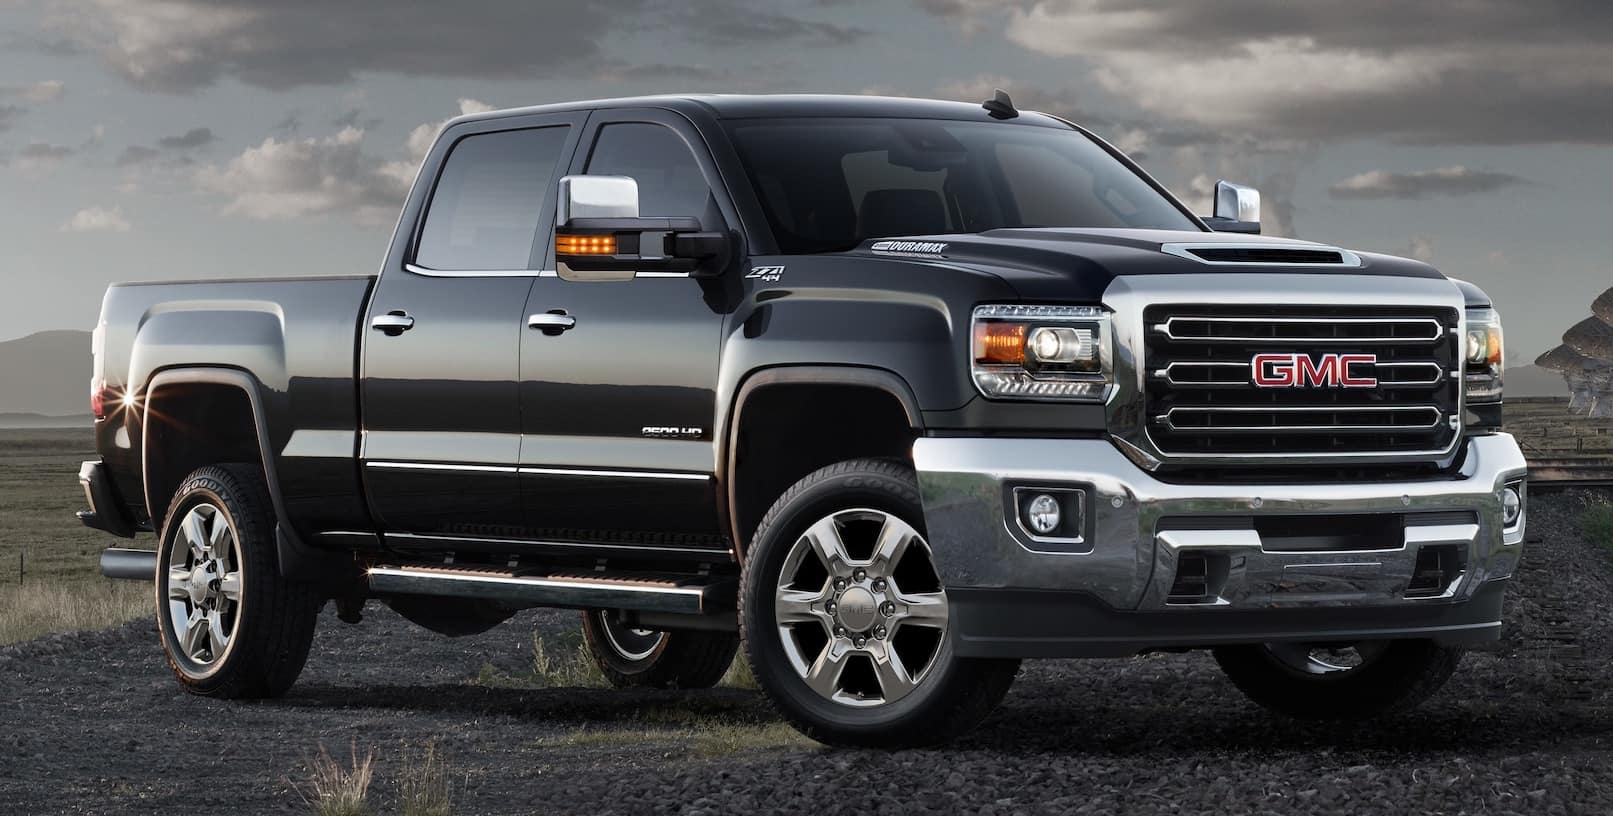 GMC Sierra 2500HD Dealership